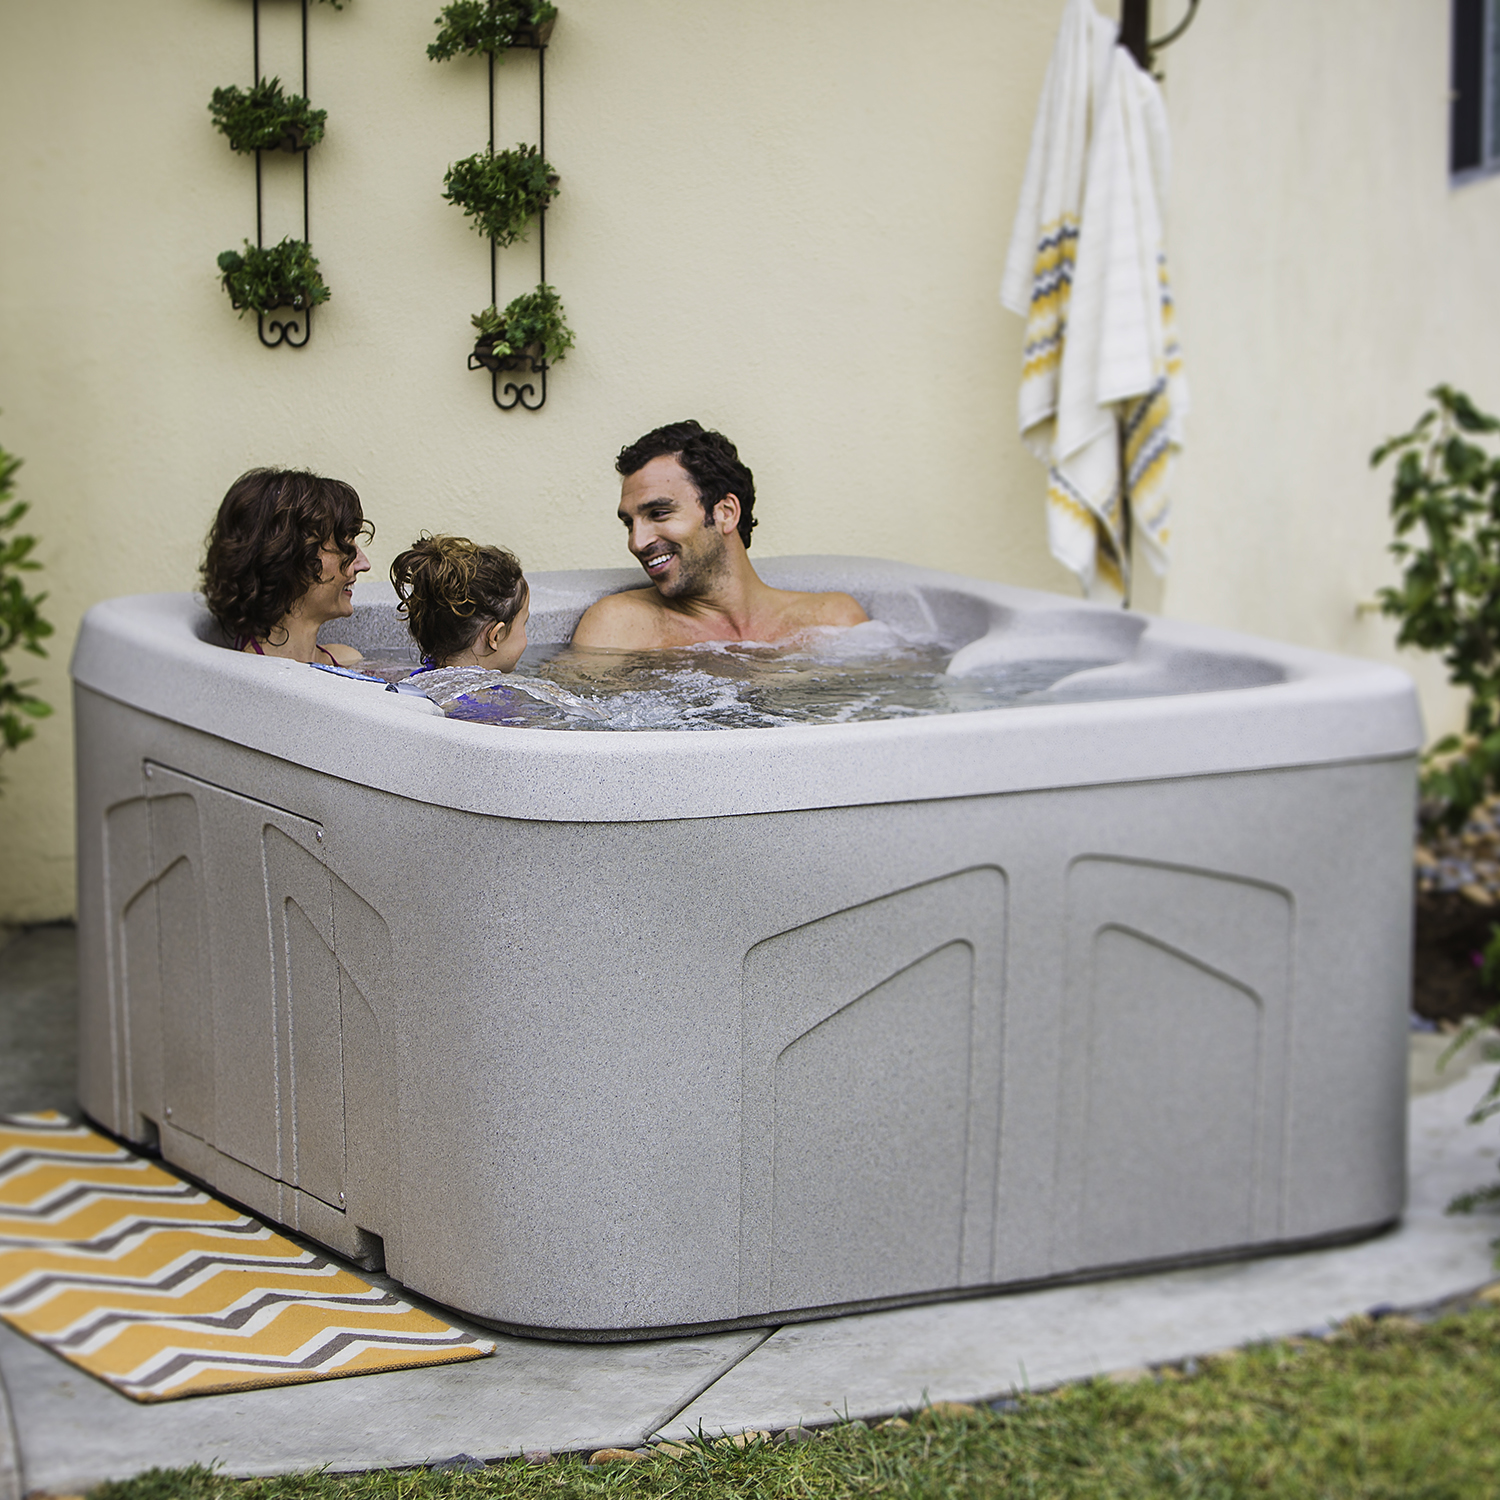 inflatable best saluspa in tub hot tubs coleman